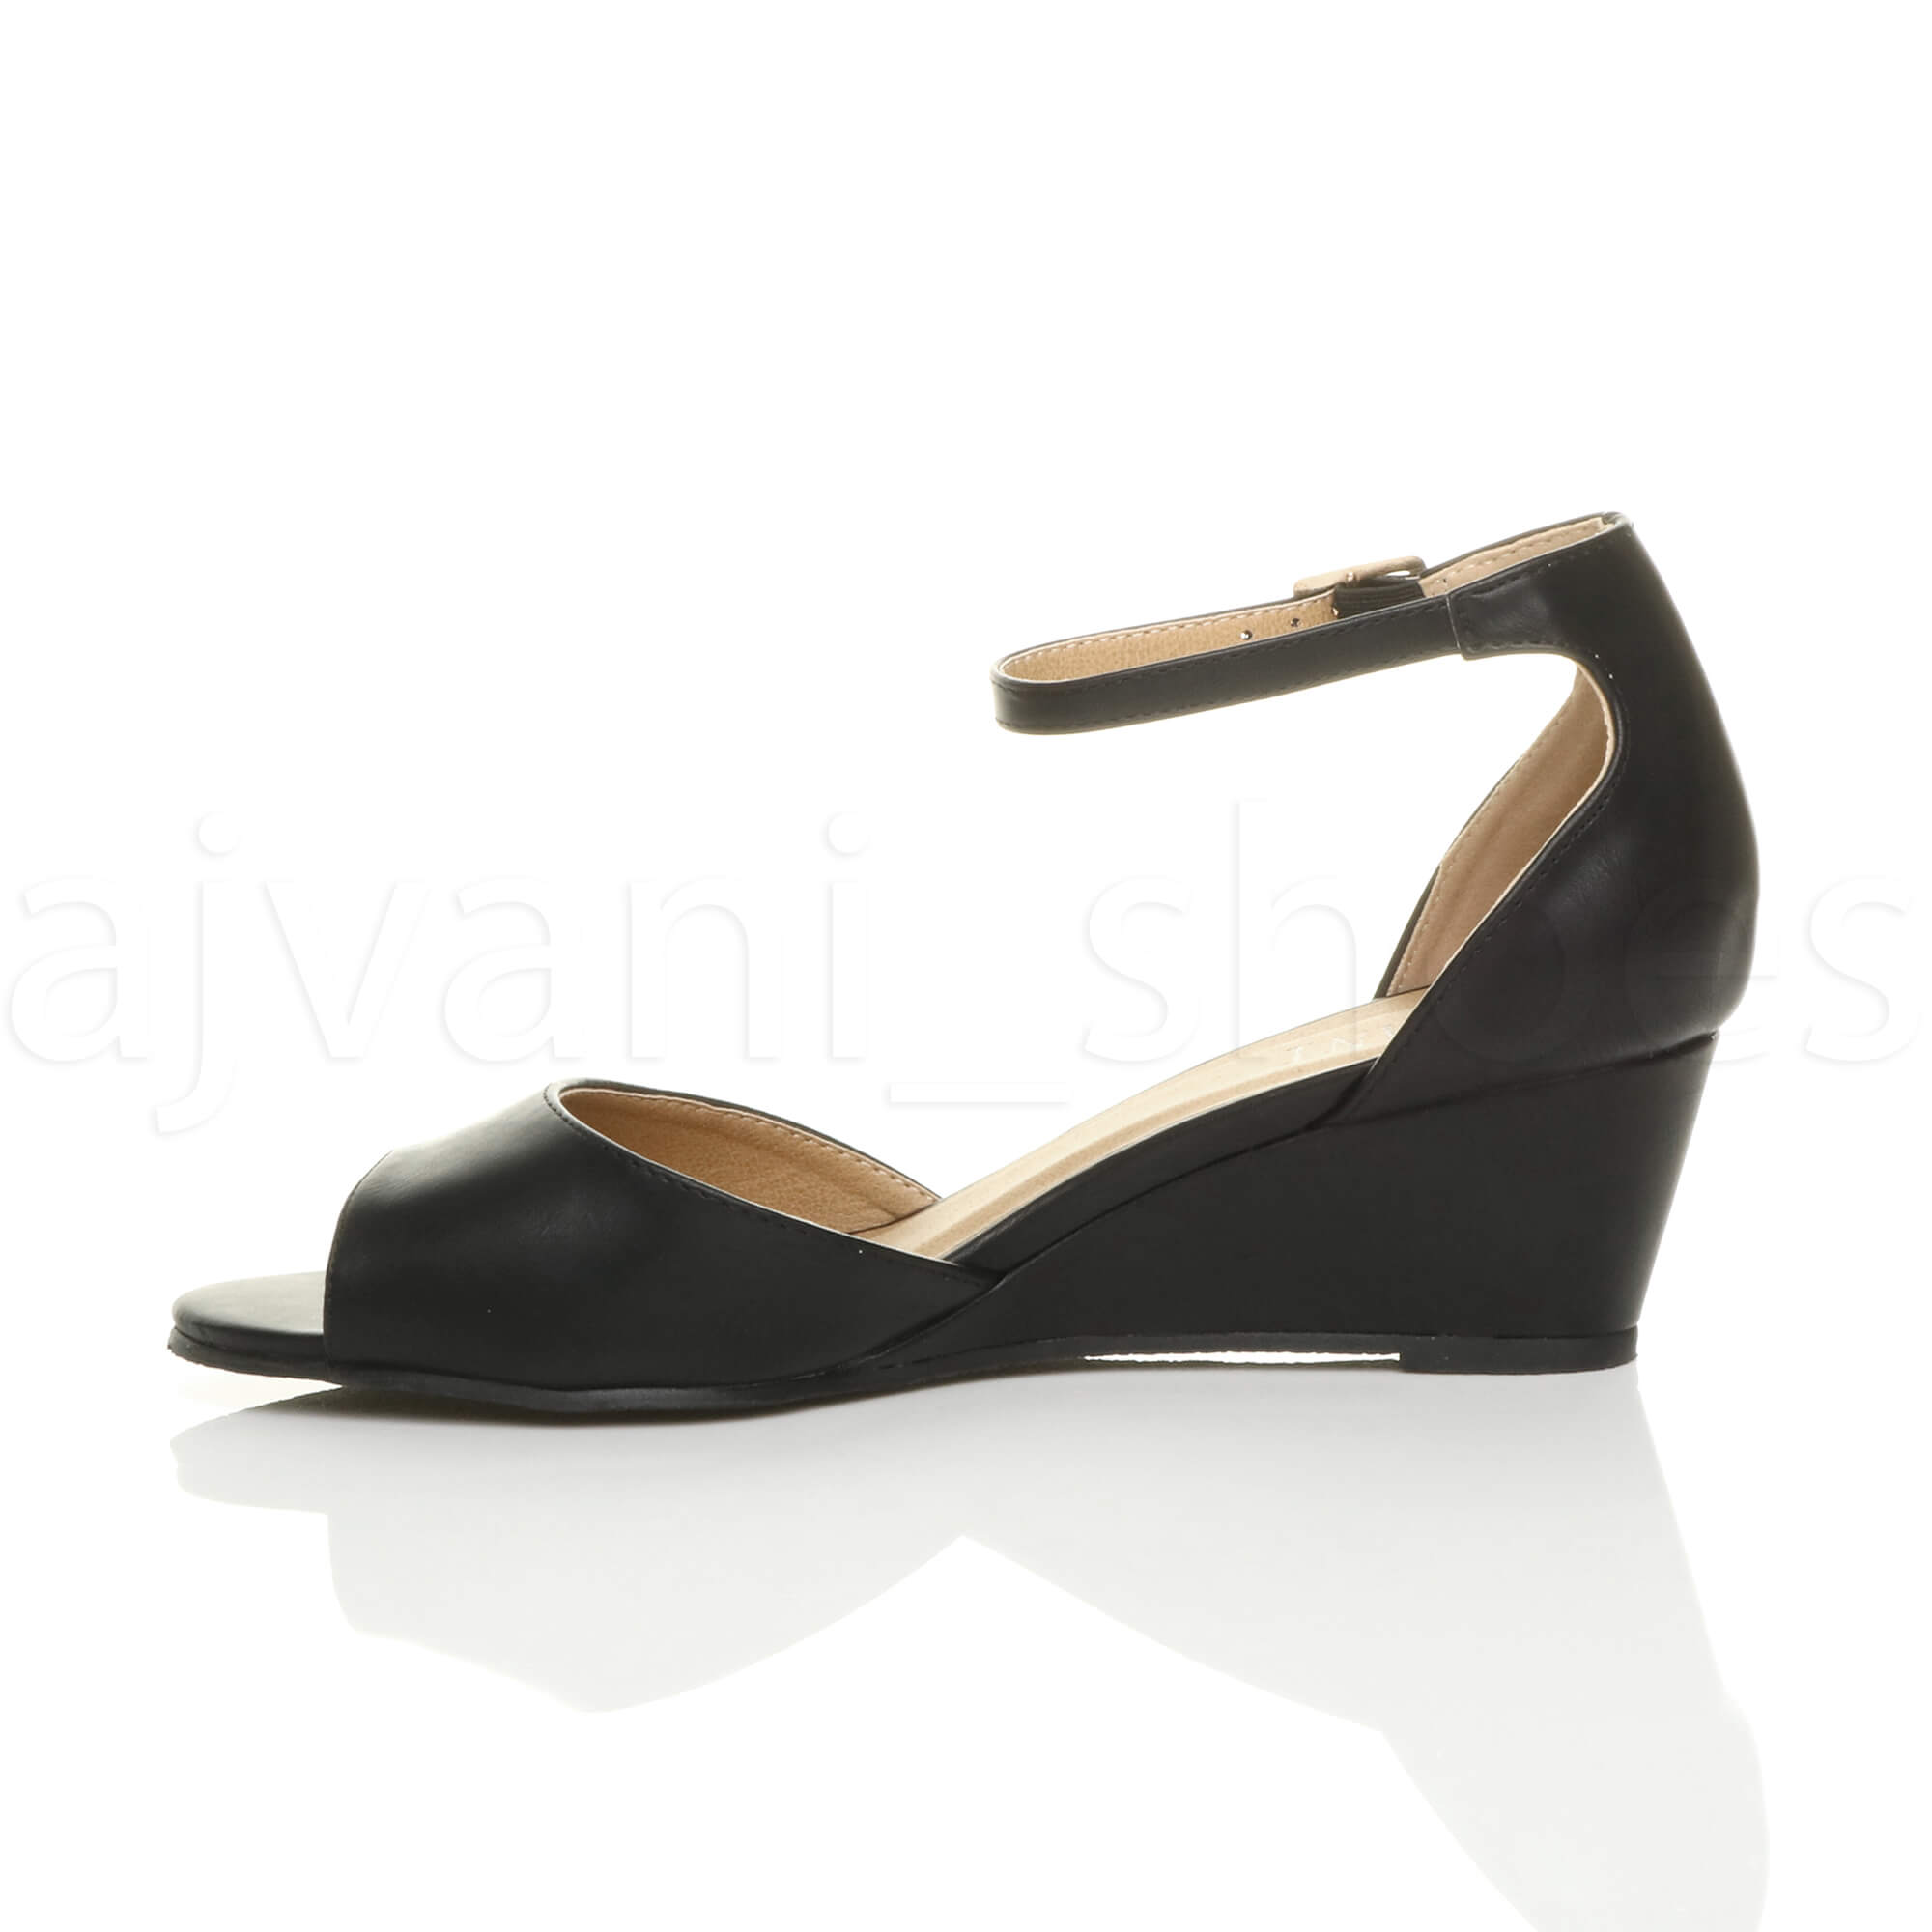 WOMENS-LADIES-LOW-MID-WEDGE-HEEL-ANKLE-STRAP-SMART-CASUAL-EVENING-SANDALS-SIZE thumbnail 4